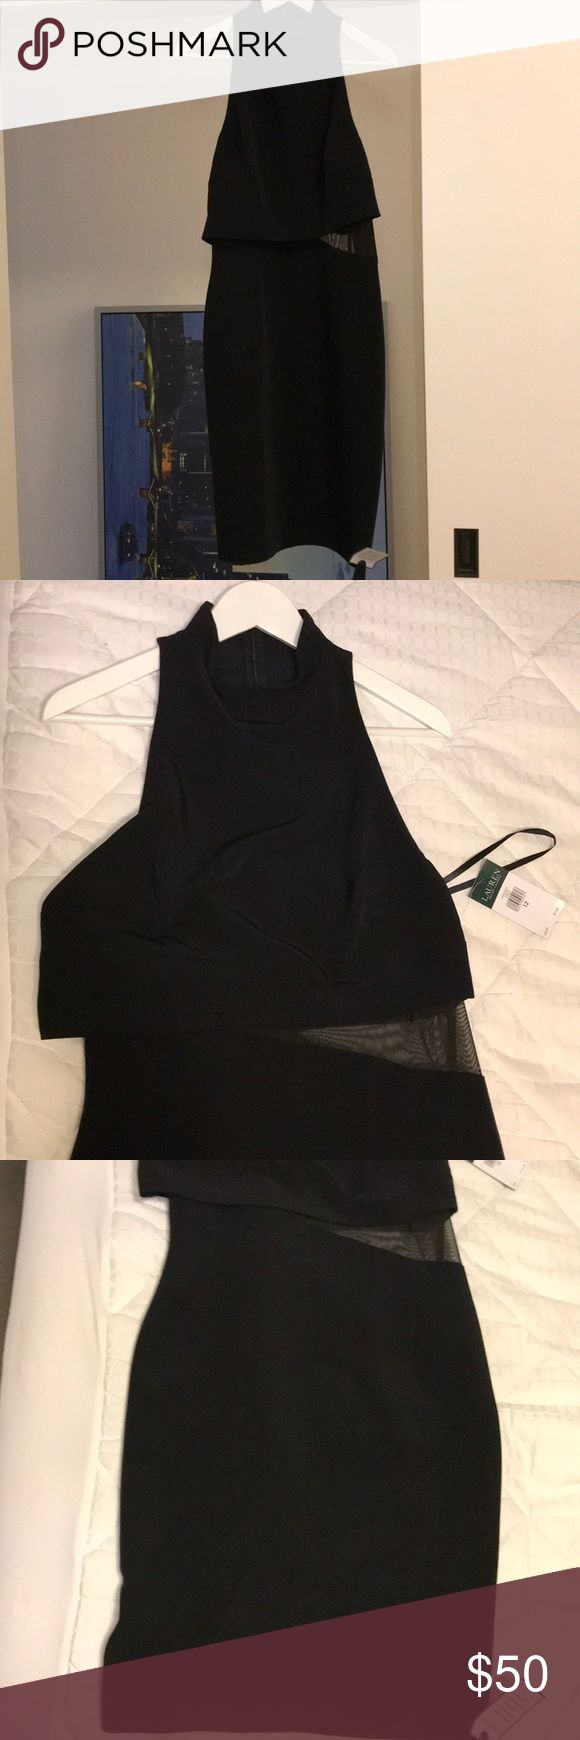 Original Ralph Lauren Dress NWT 12 I am a selling a new  Lauren Ralph Lauren dress. A staple black dress for any occasion. Sheer detail on left side. Invisible zipper. Size: 12 New with Tags Color: Black Lauren Ralph Lauren Dresses